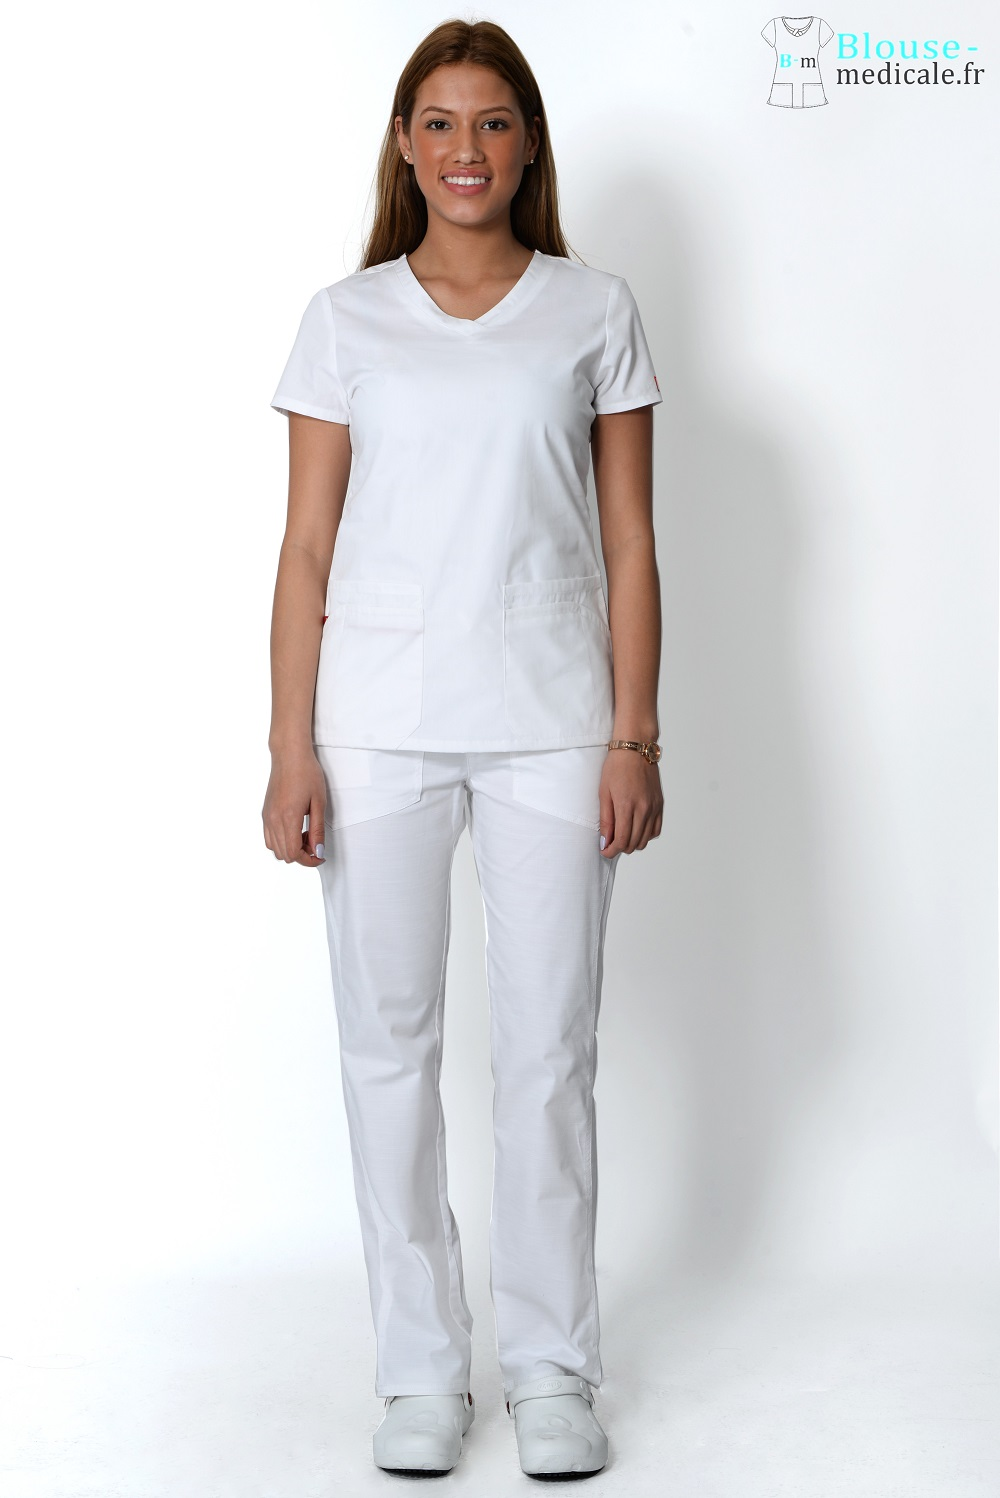 tenue medicale dickies femme blanche blouse medicale blanche femme